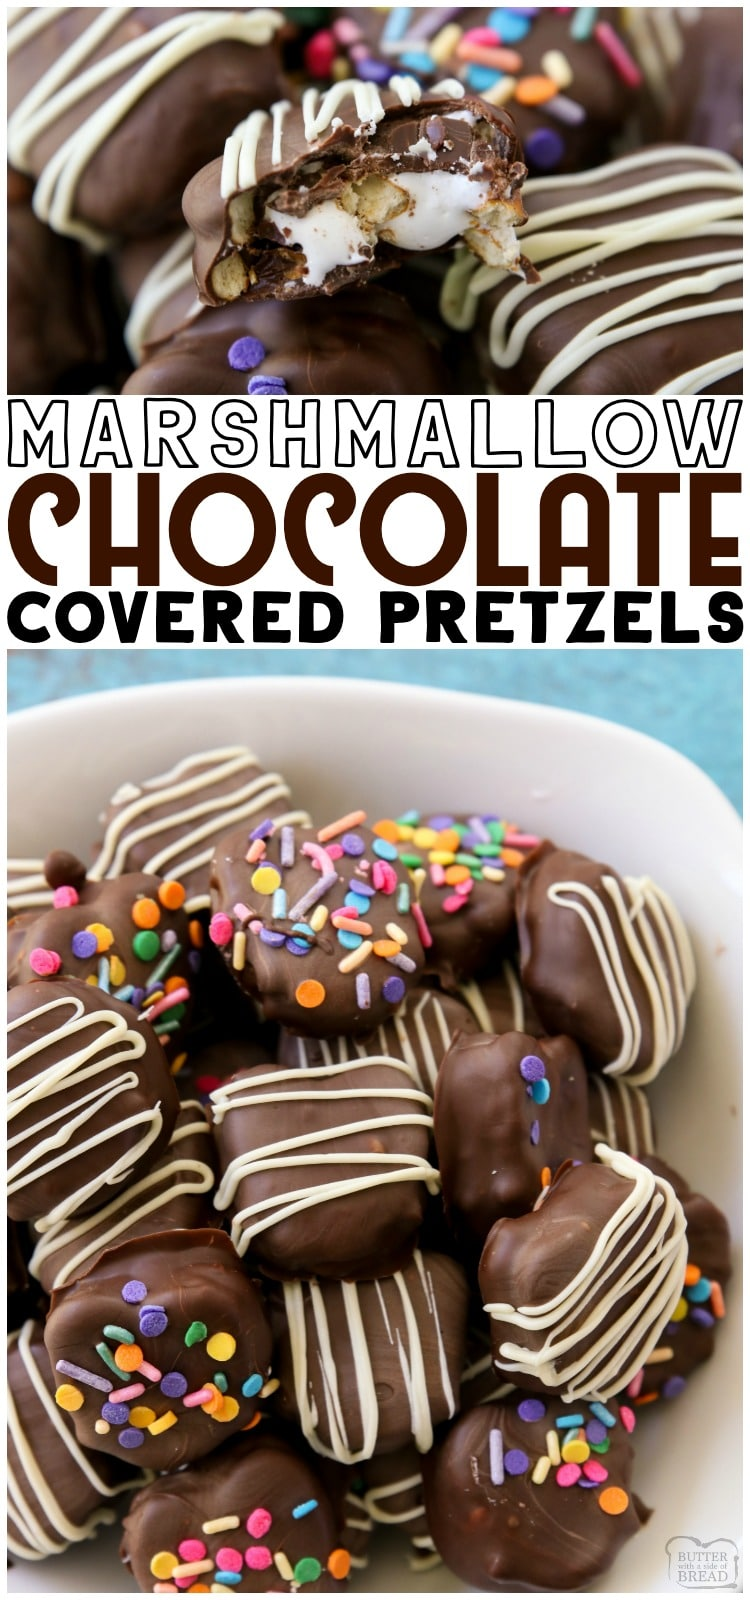 Chocolate Covered Pretzel recipe with marshmallow fluff filling are a delightful cross between s'mores and traditional chocolate pretzels. These chocolate dipped pretzels are easy to make and so delicious! #chocolate #pretzels #marshmallow #nobake #dessert from BUTTER WITH A SIDE OF BREAD